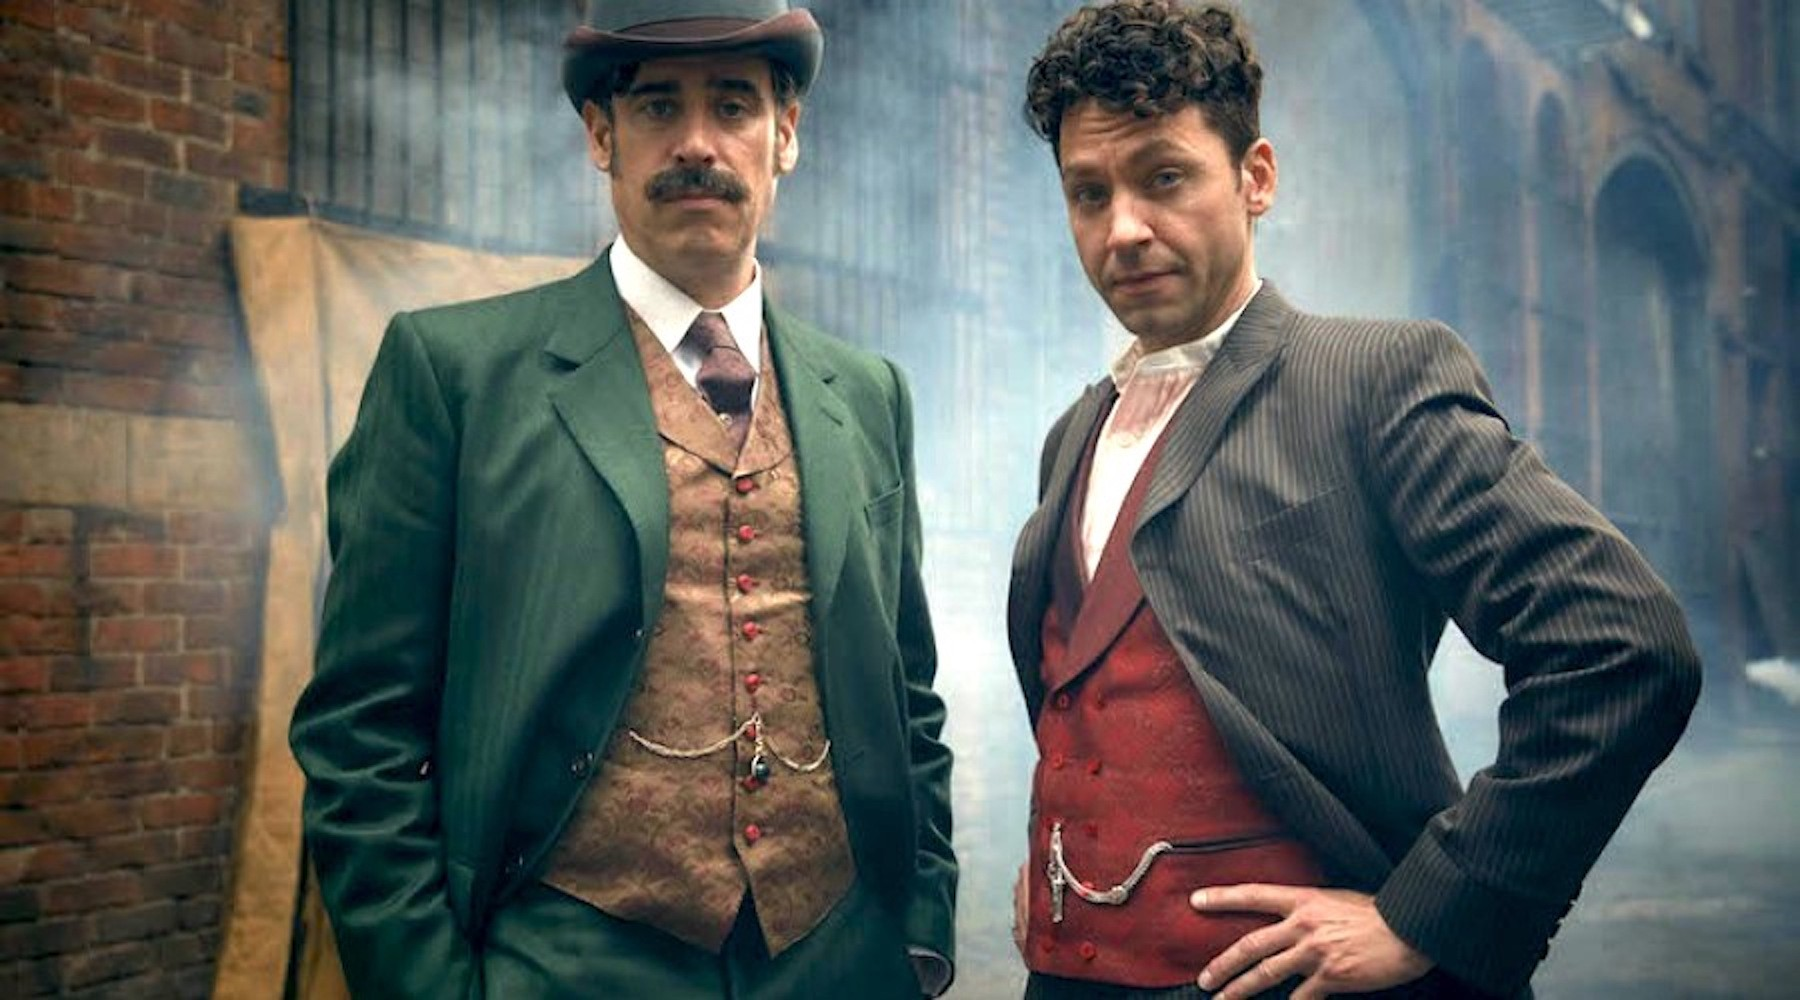 Stephen Mangan & Michael Weston - Houdini and Doyle (2016)